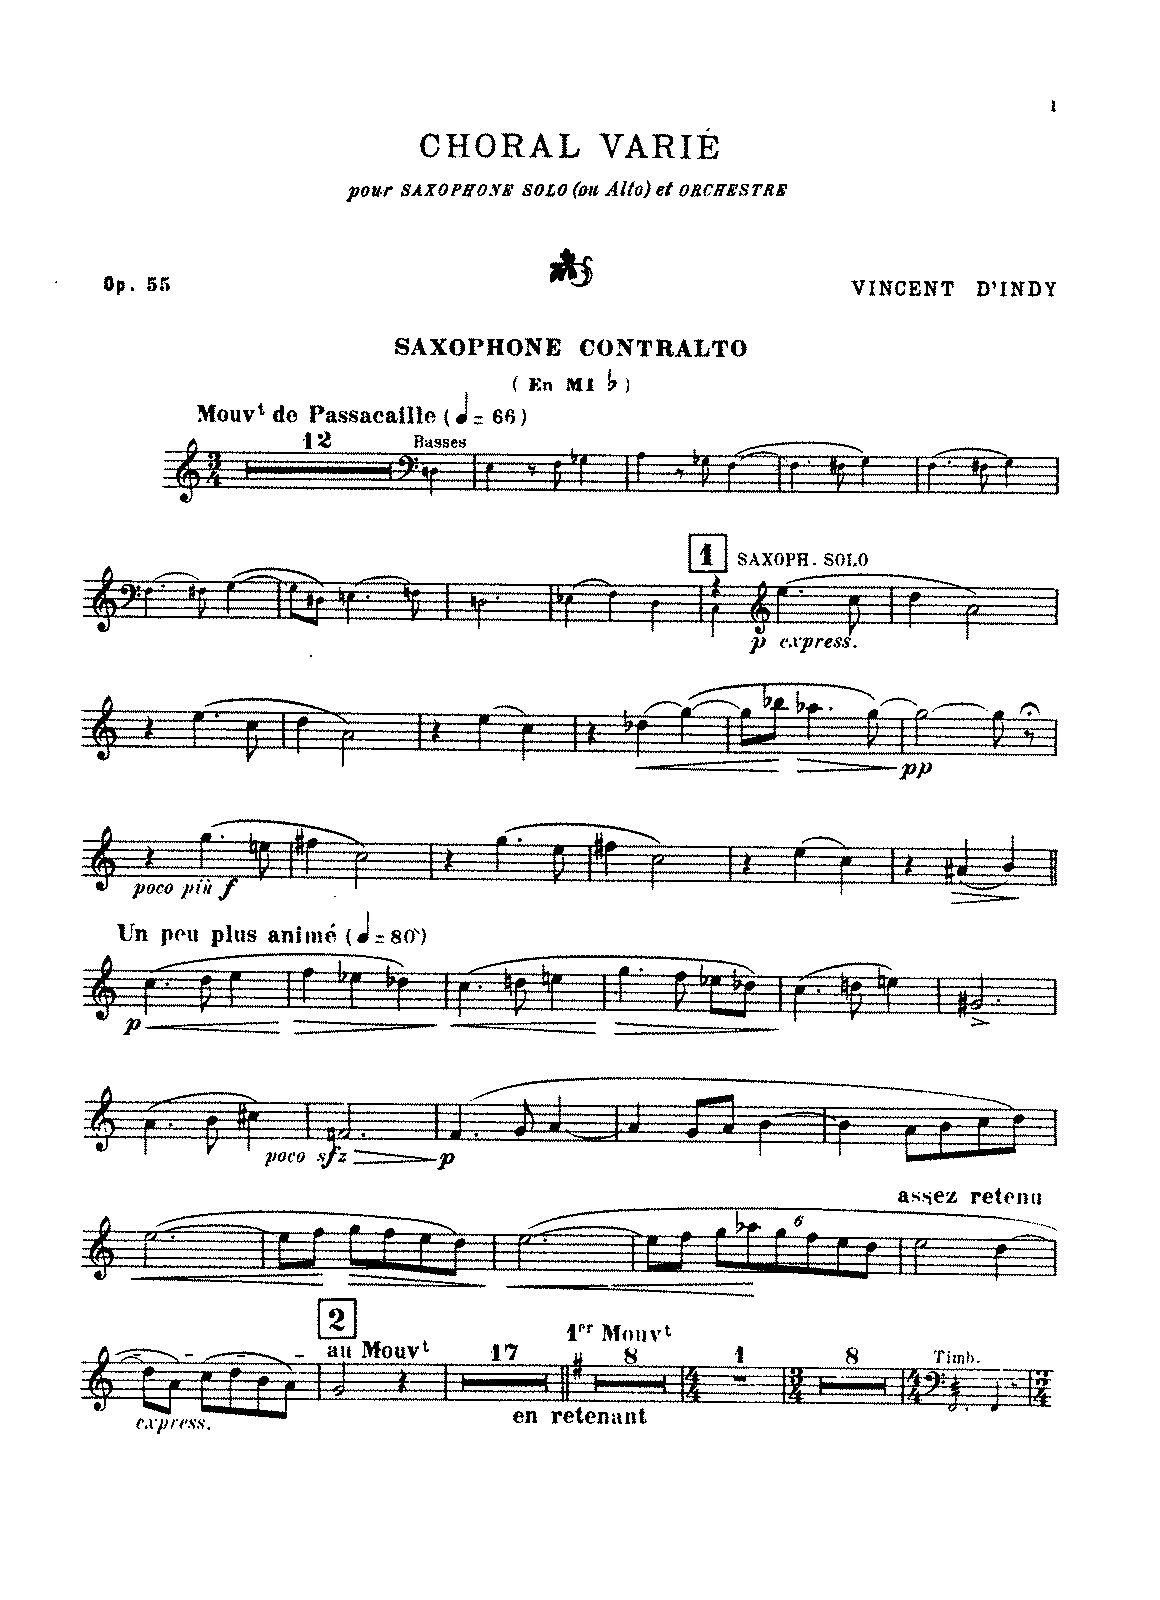 D'Indy - Choral varié, Op. 55 (sax and piano).pdf